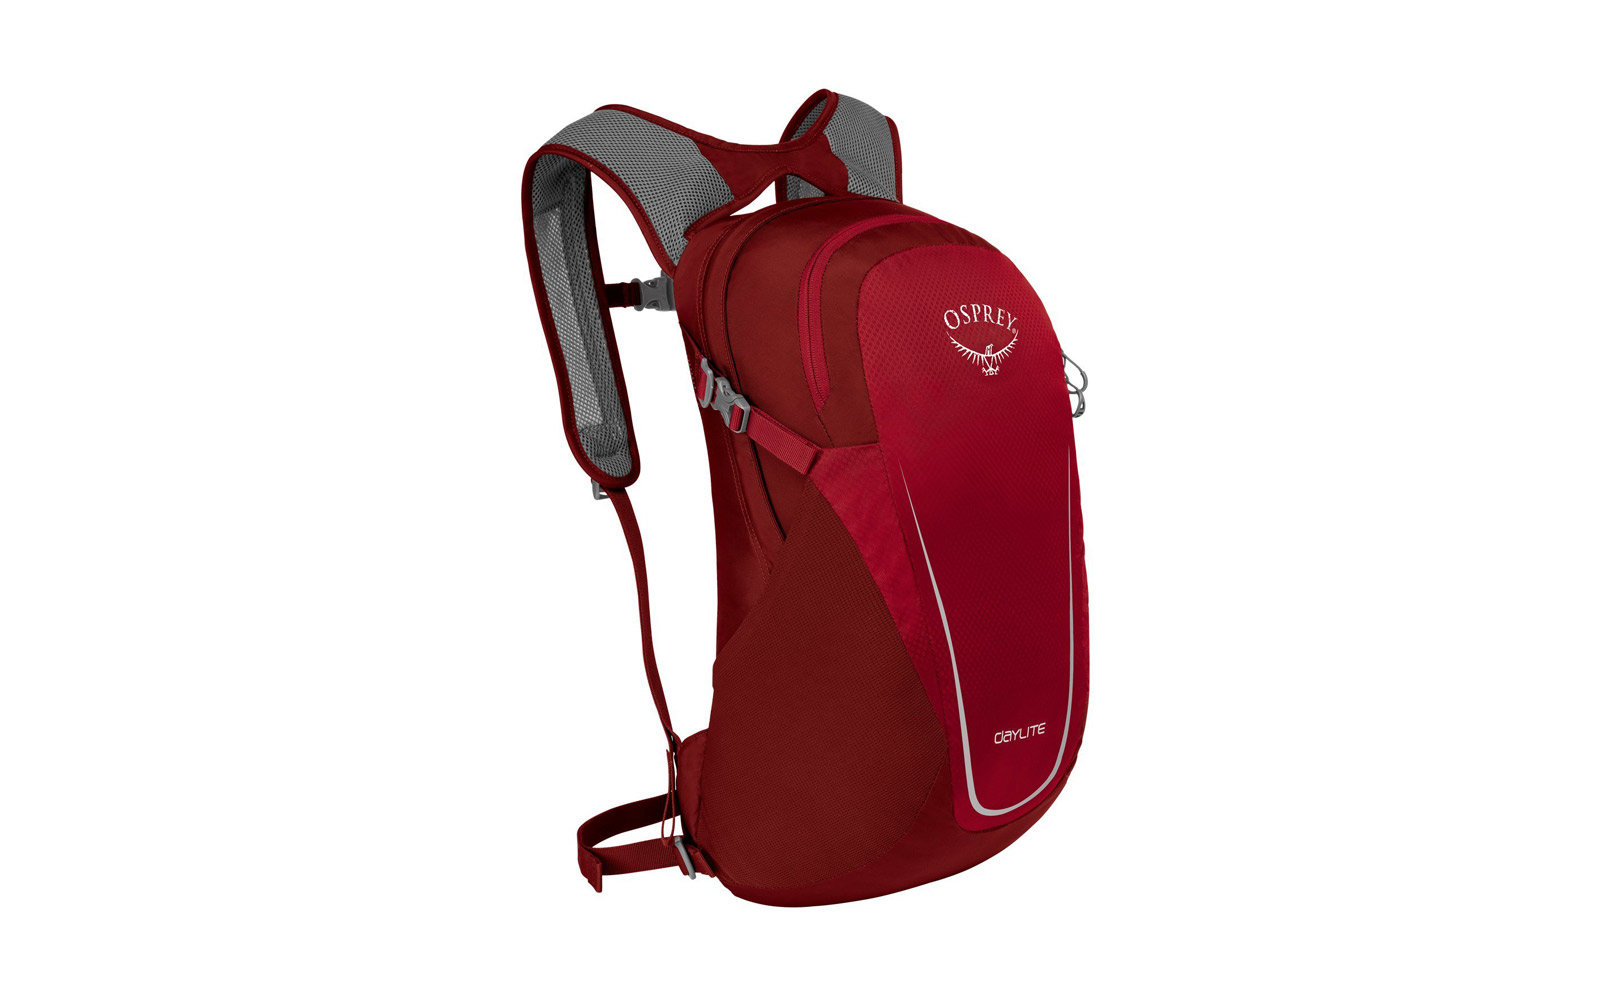 osprey under 50 daypack